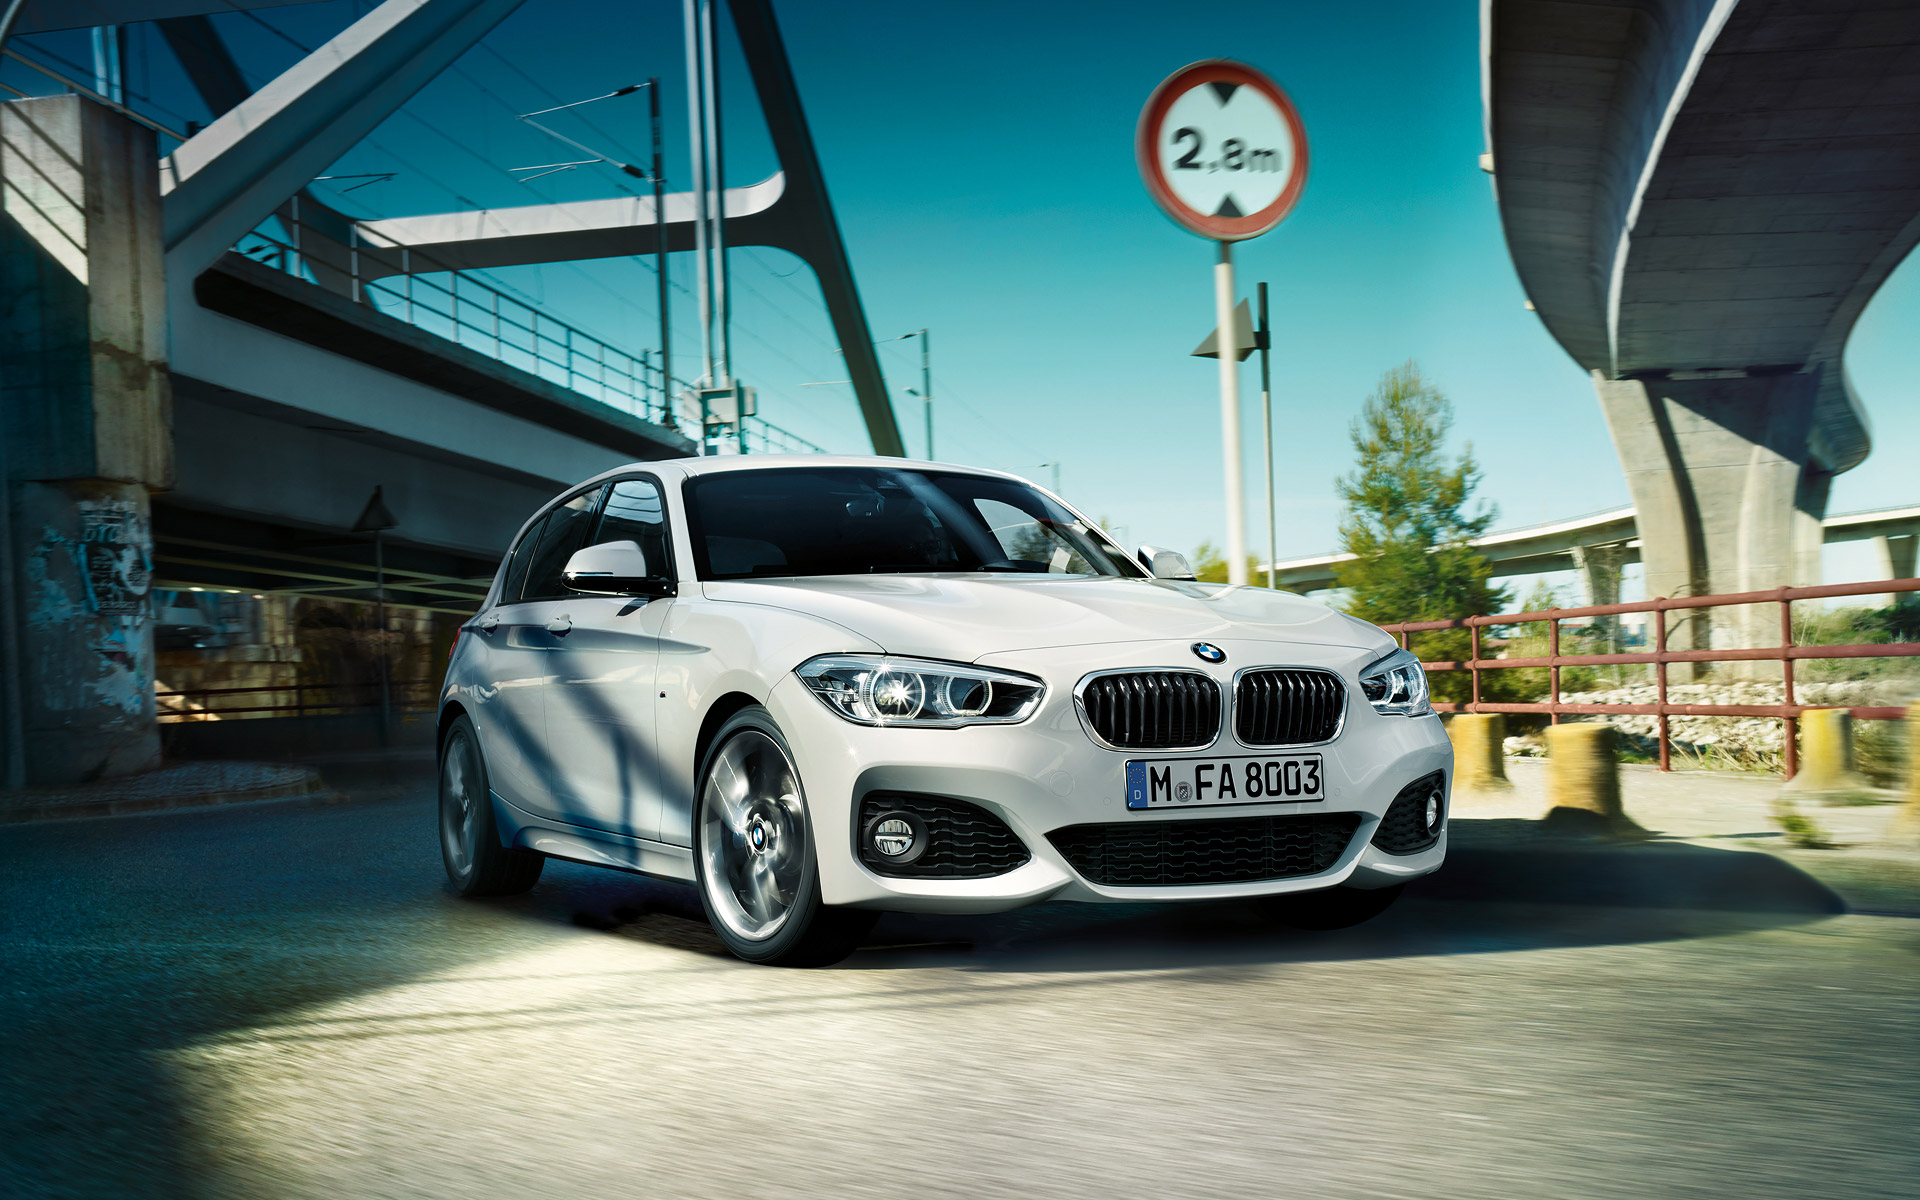 BMW 1 Series 5 Doors Exterior Design